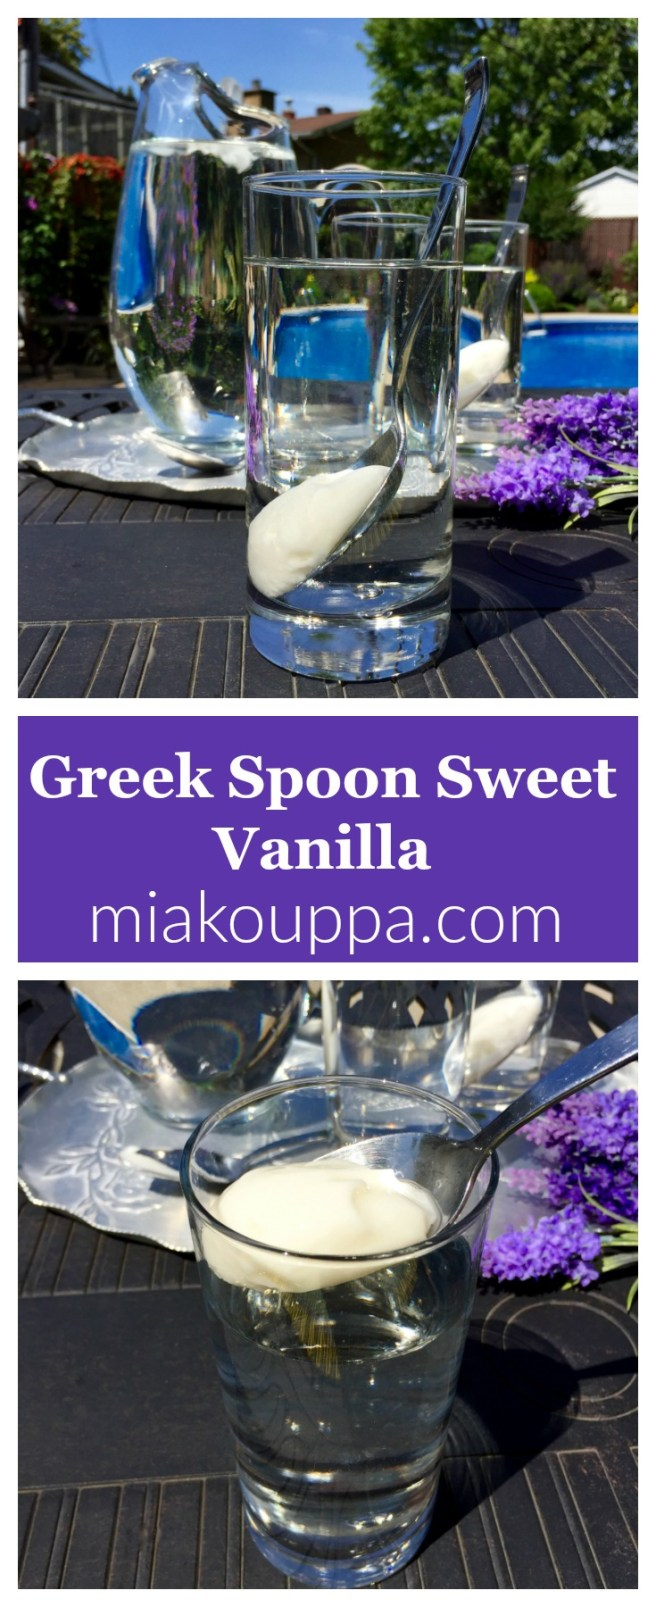 Greek spoon sweet vanilla